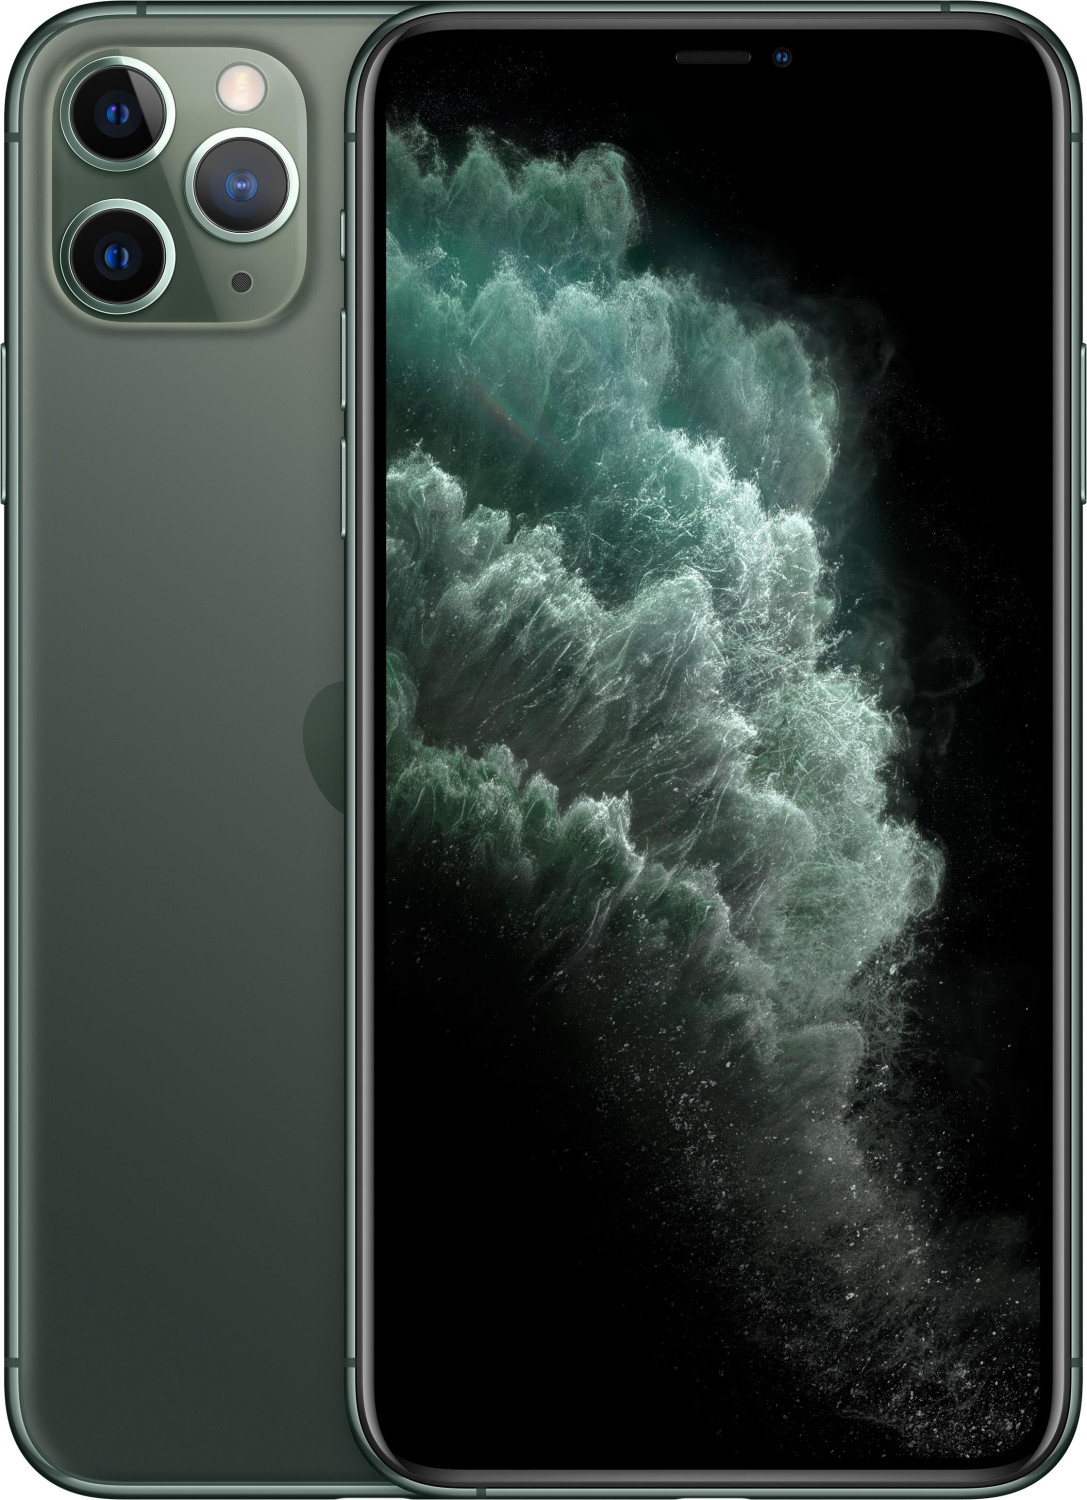 Image of Apple iPhone 11 Pro Max 256GB verde notte